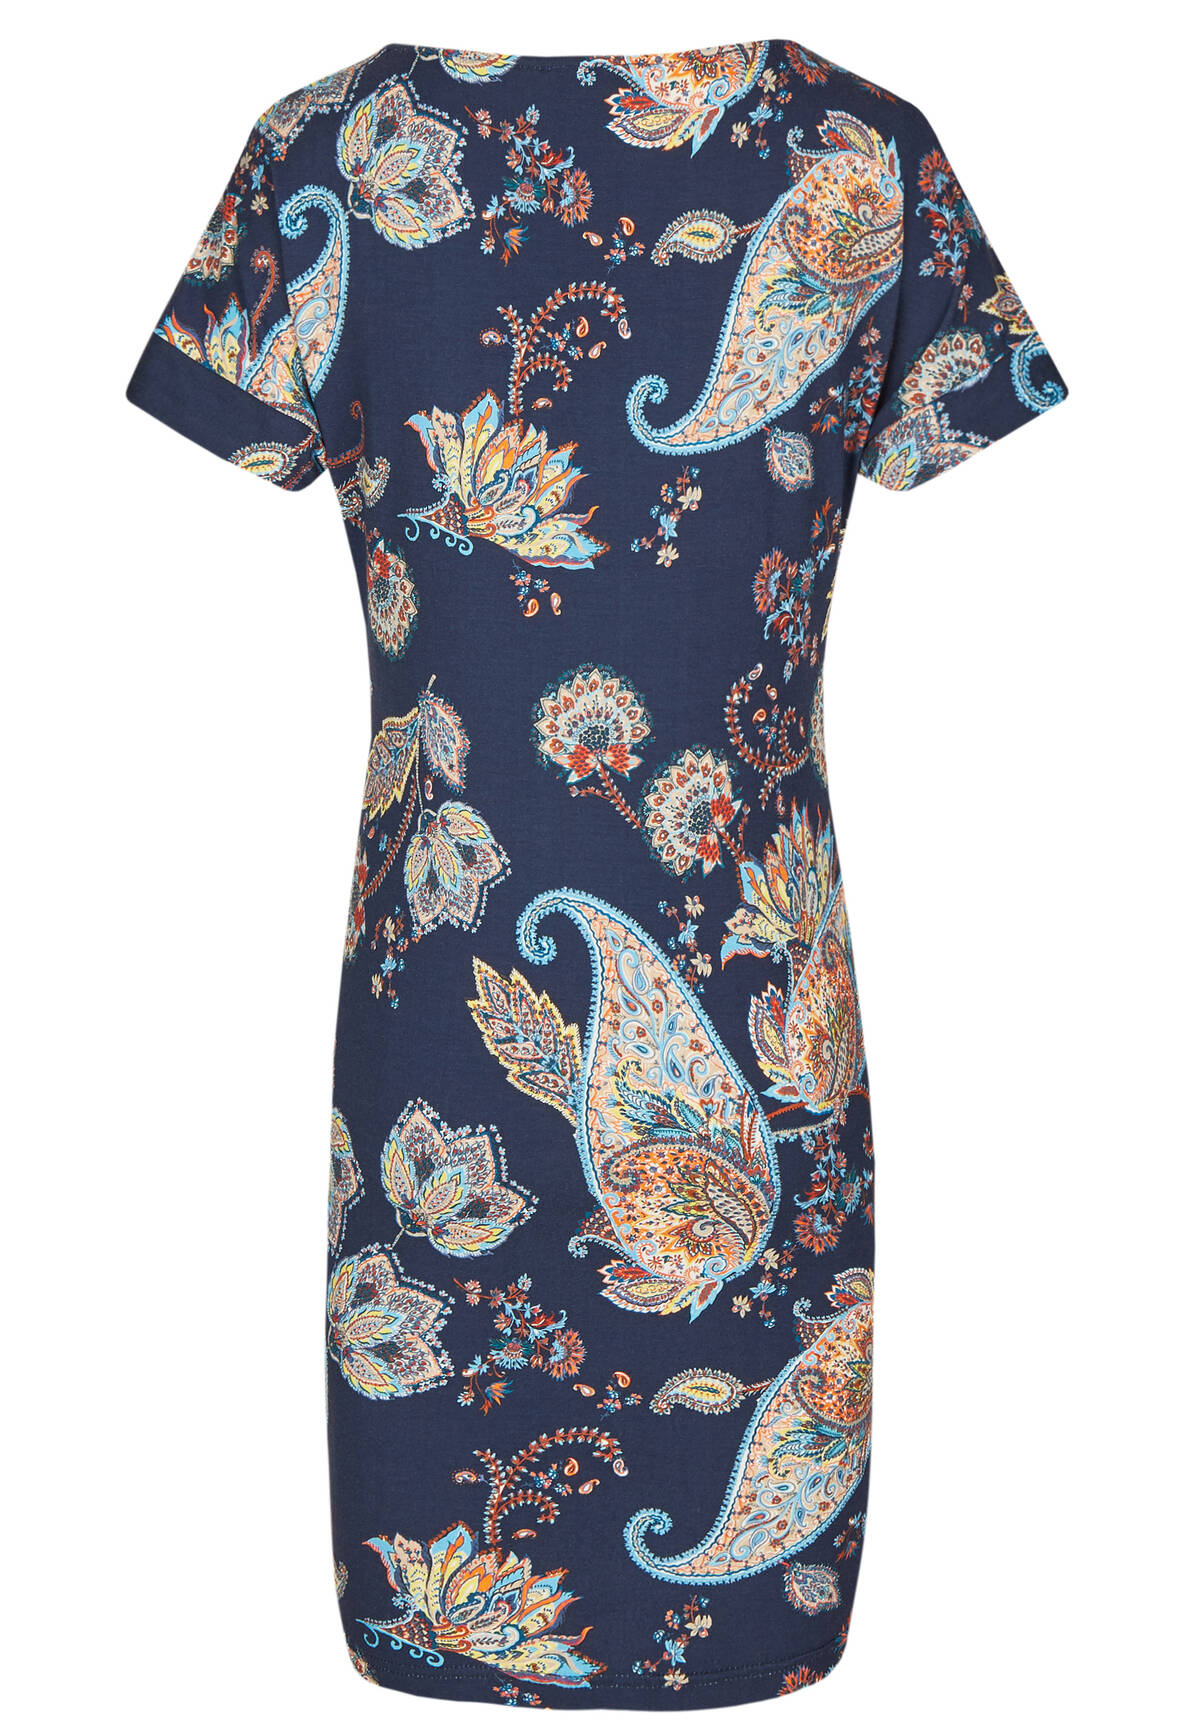 Modisches Kleid mit All-over Paisley-Muster / Jersey Dress